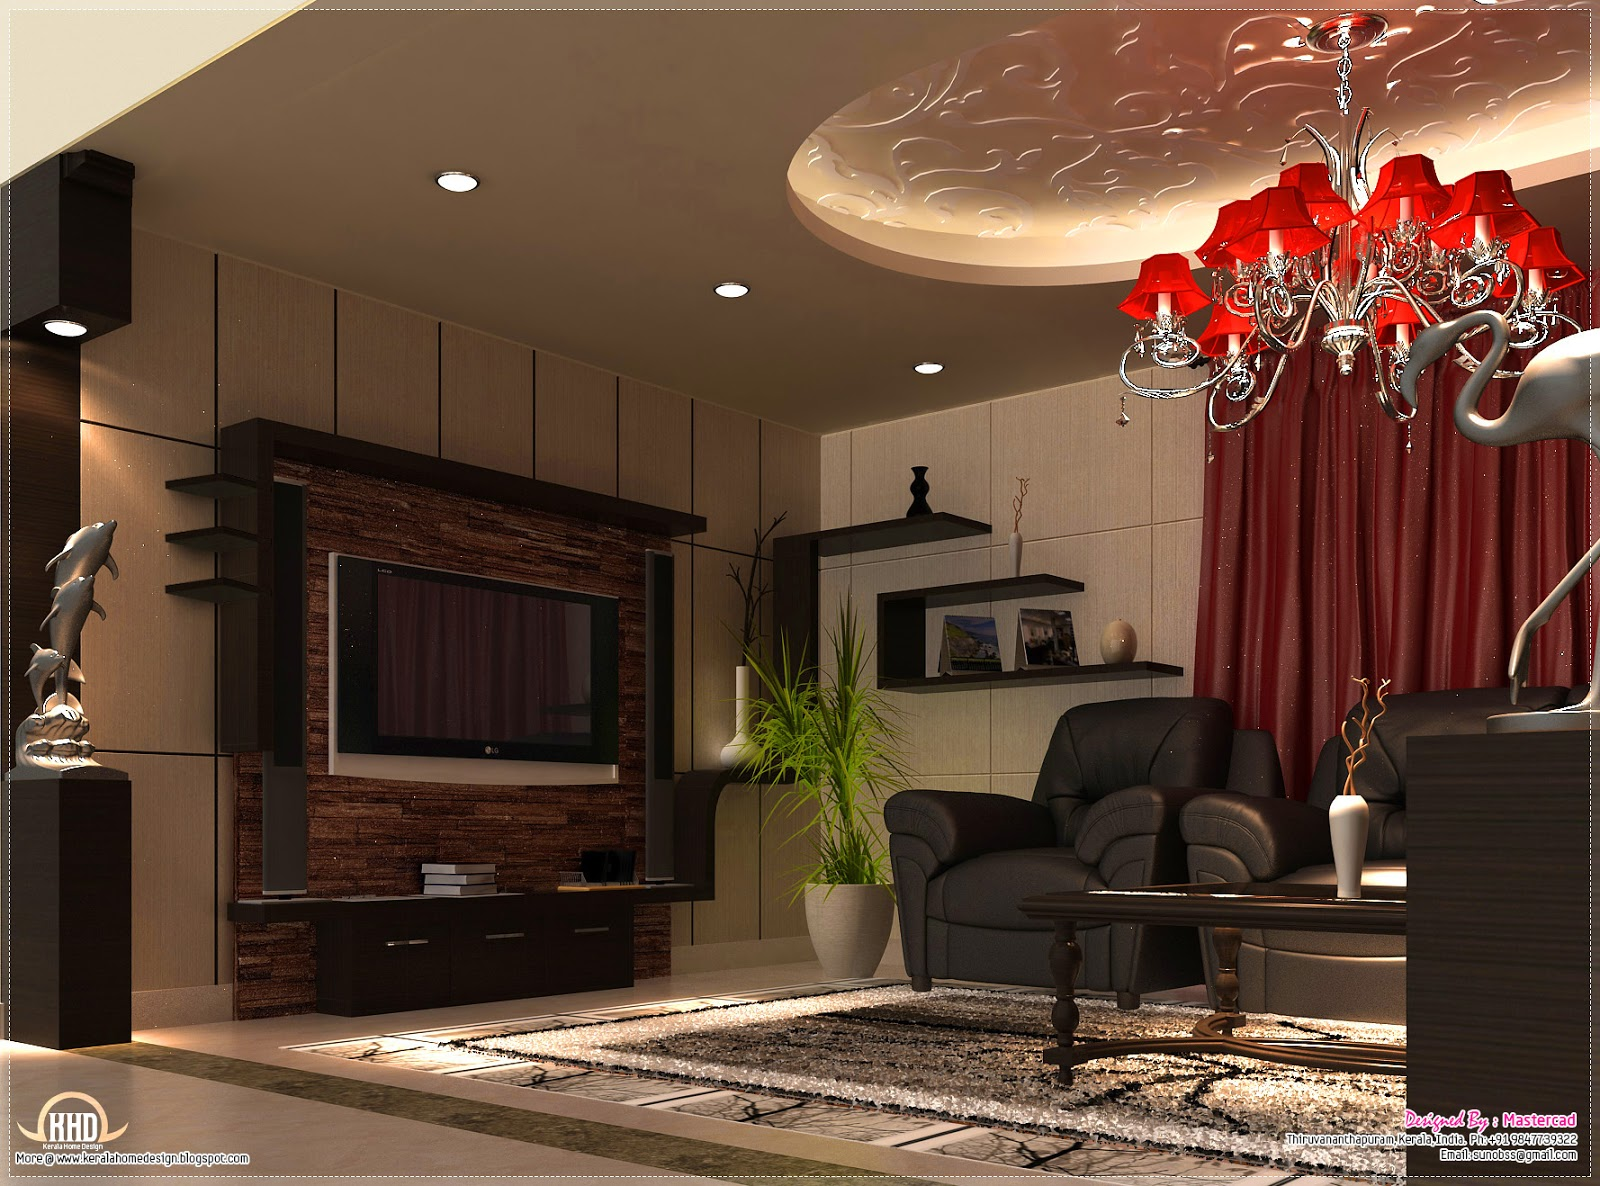 Interior design ideas kerala home design and floor plans for Home interior design tips